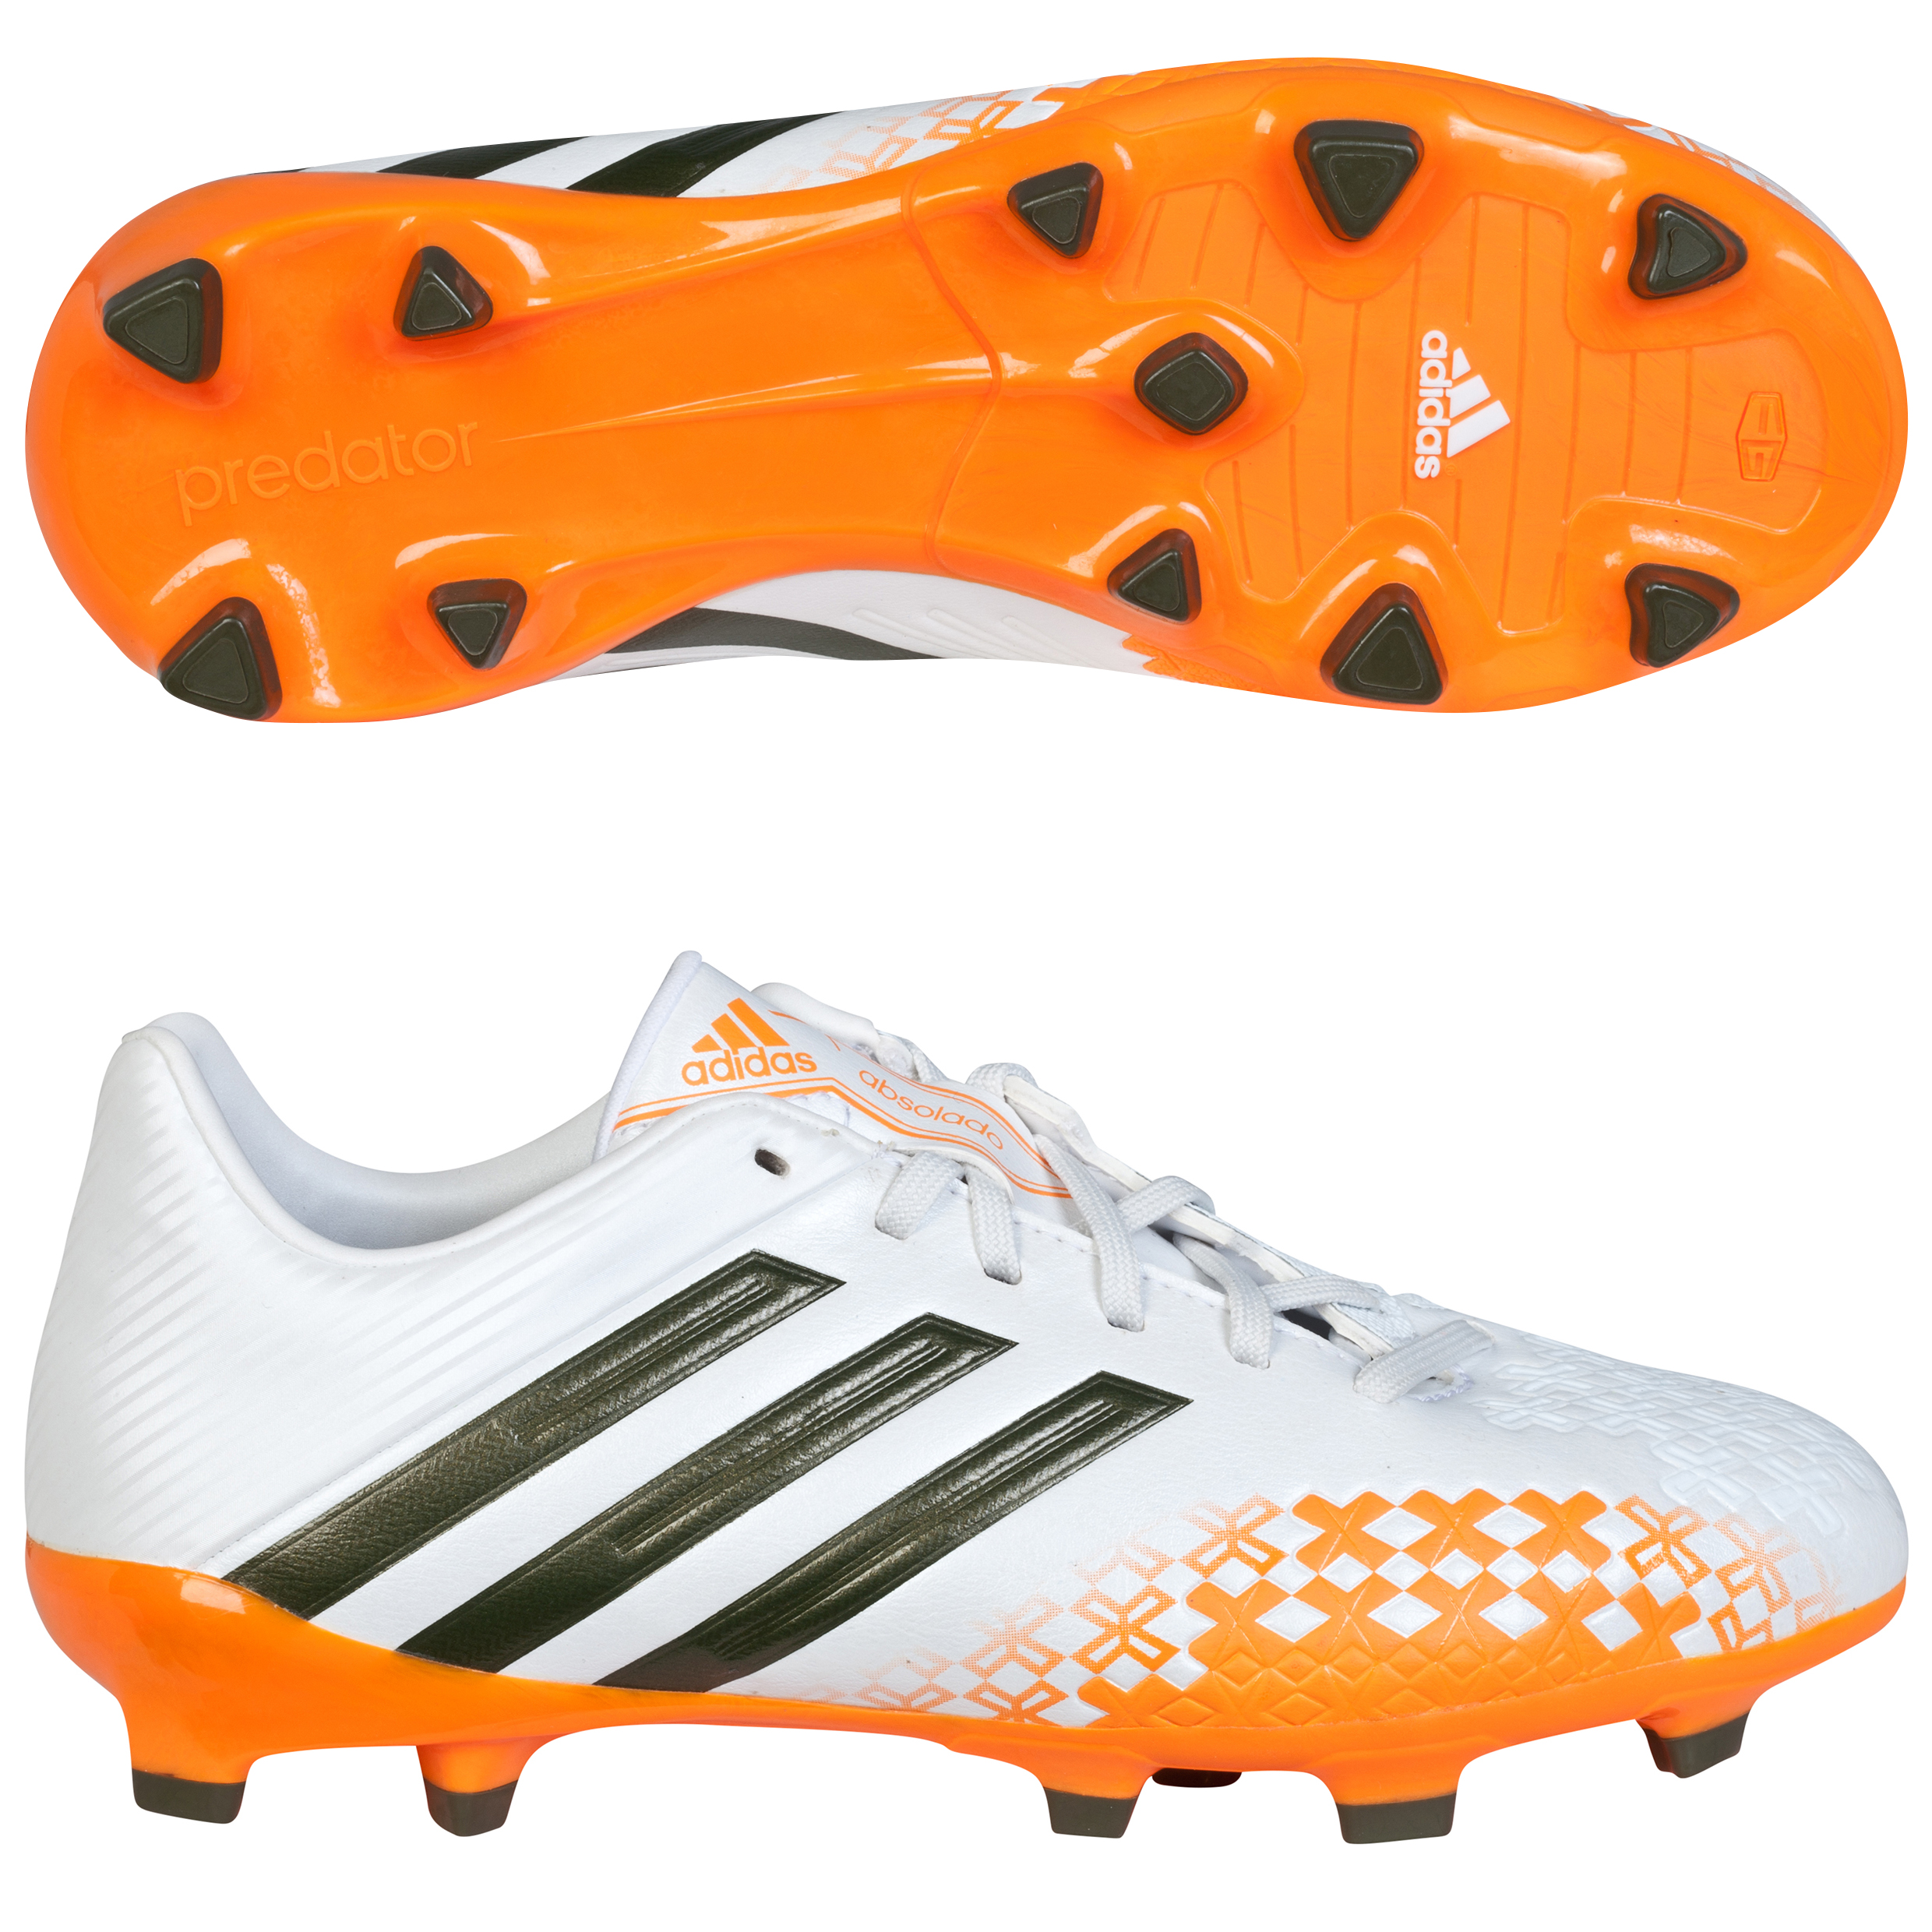 adidas P Absolado LZ TRX Firm Ground Football Boots - Kids White